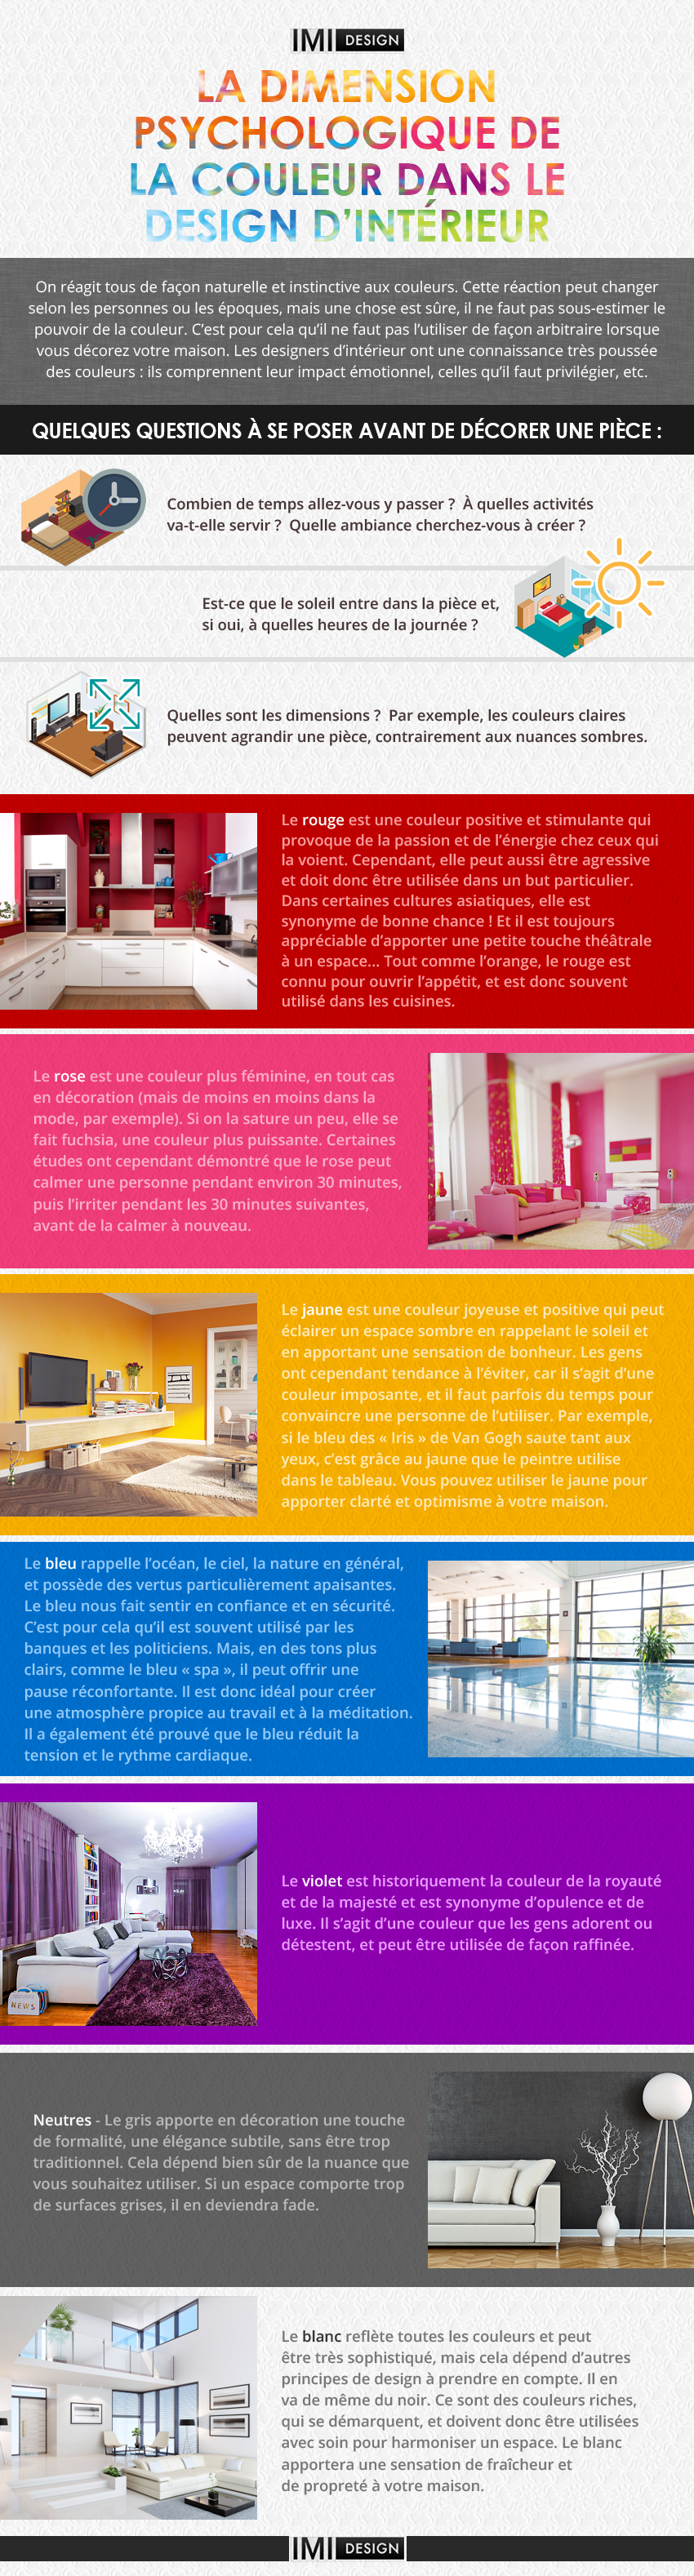 fr_FR_The Psychology of Color on Interior Design_Infographic courtesy of IMI Design.png